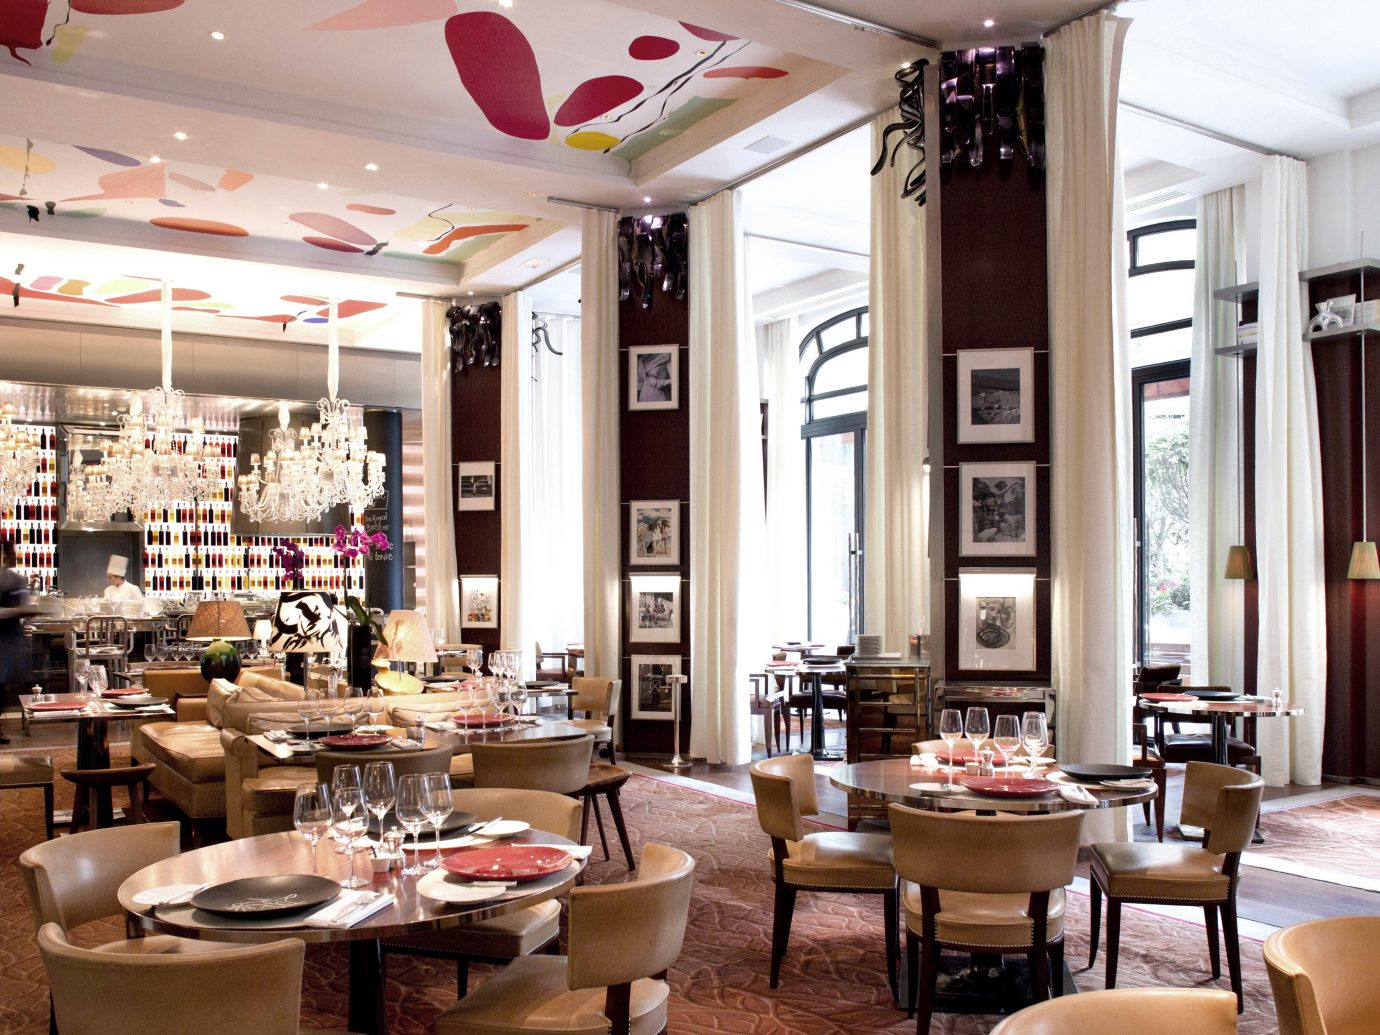 Dining Drink Eat France Hotels Paris table indoor ceiling chair room restaurant meal interior design café function hall Bar cafeteria area